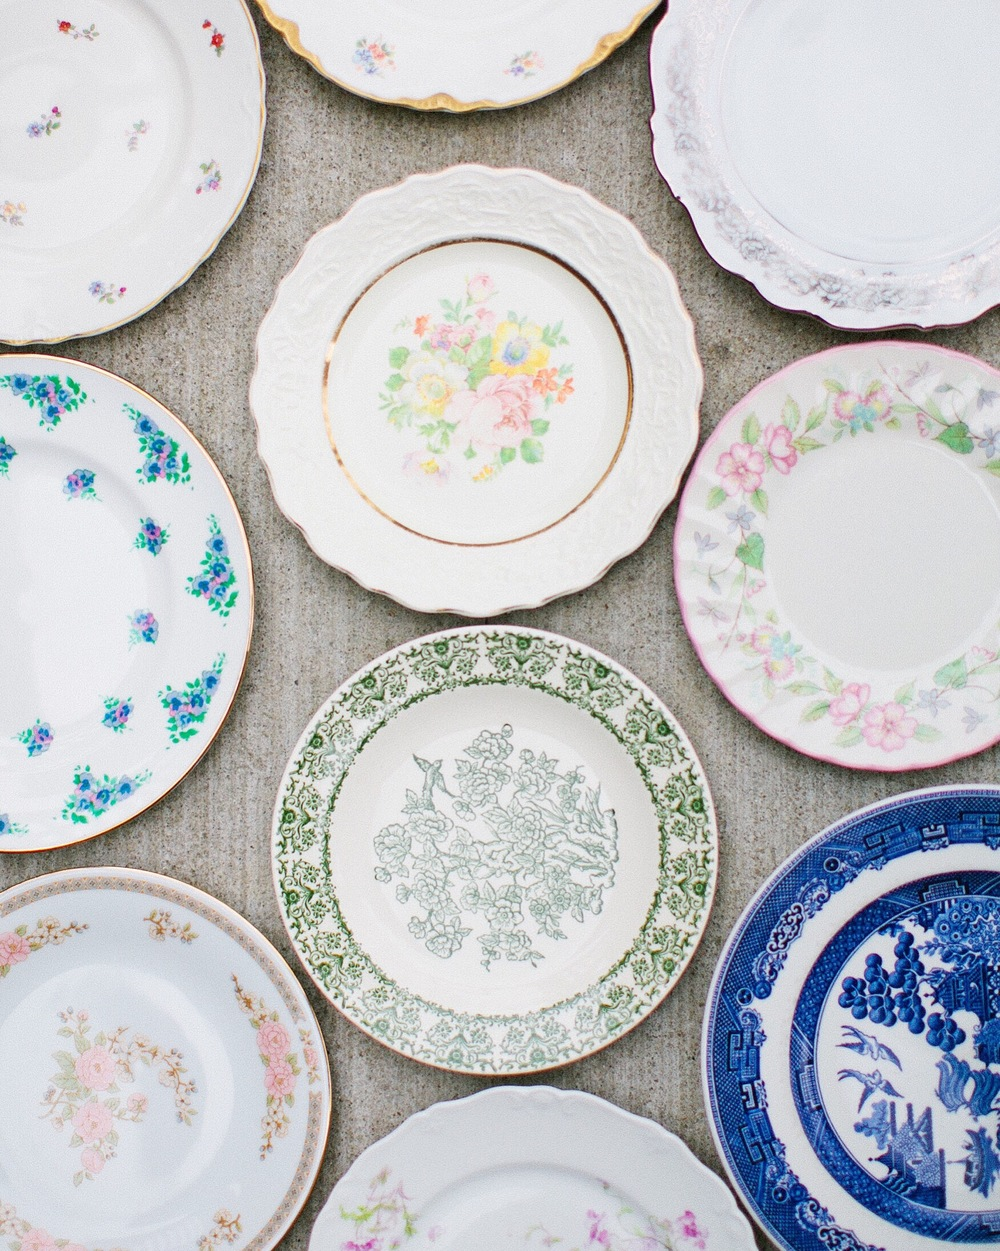 Fine china | Floral plates | Dinnerware inspiration | The School of Styling Nashville - A three-day hands-on workshop for creative entrepreneurs. http://www.theschoolofstyling.com